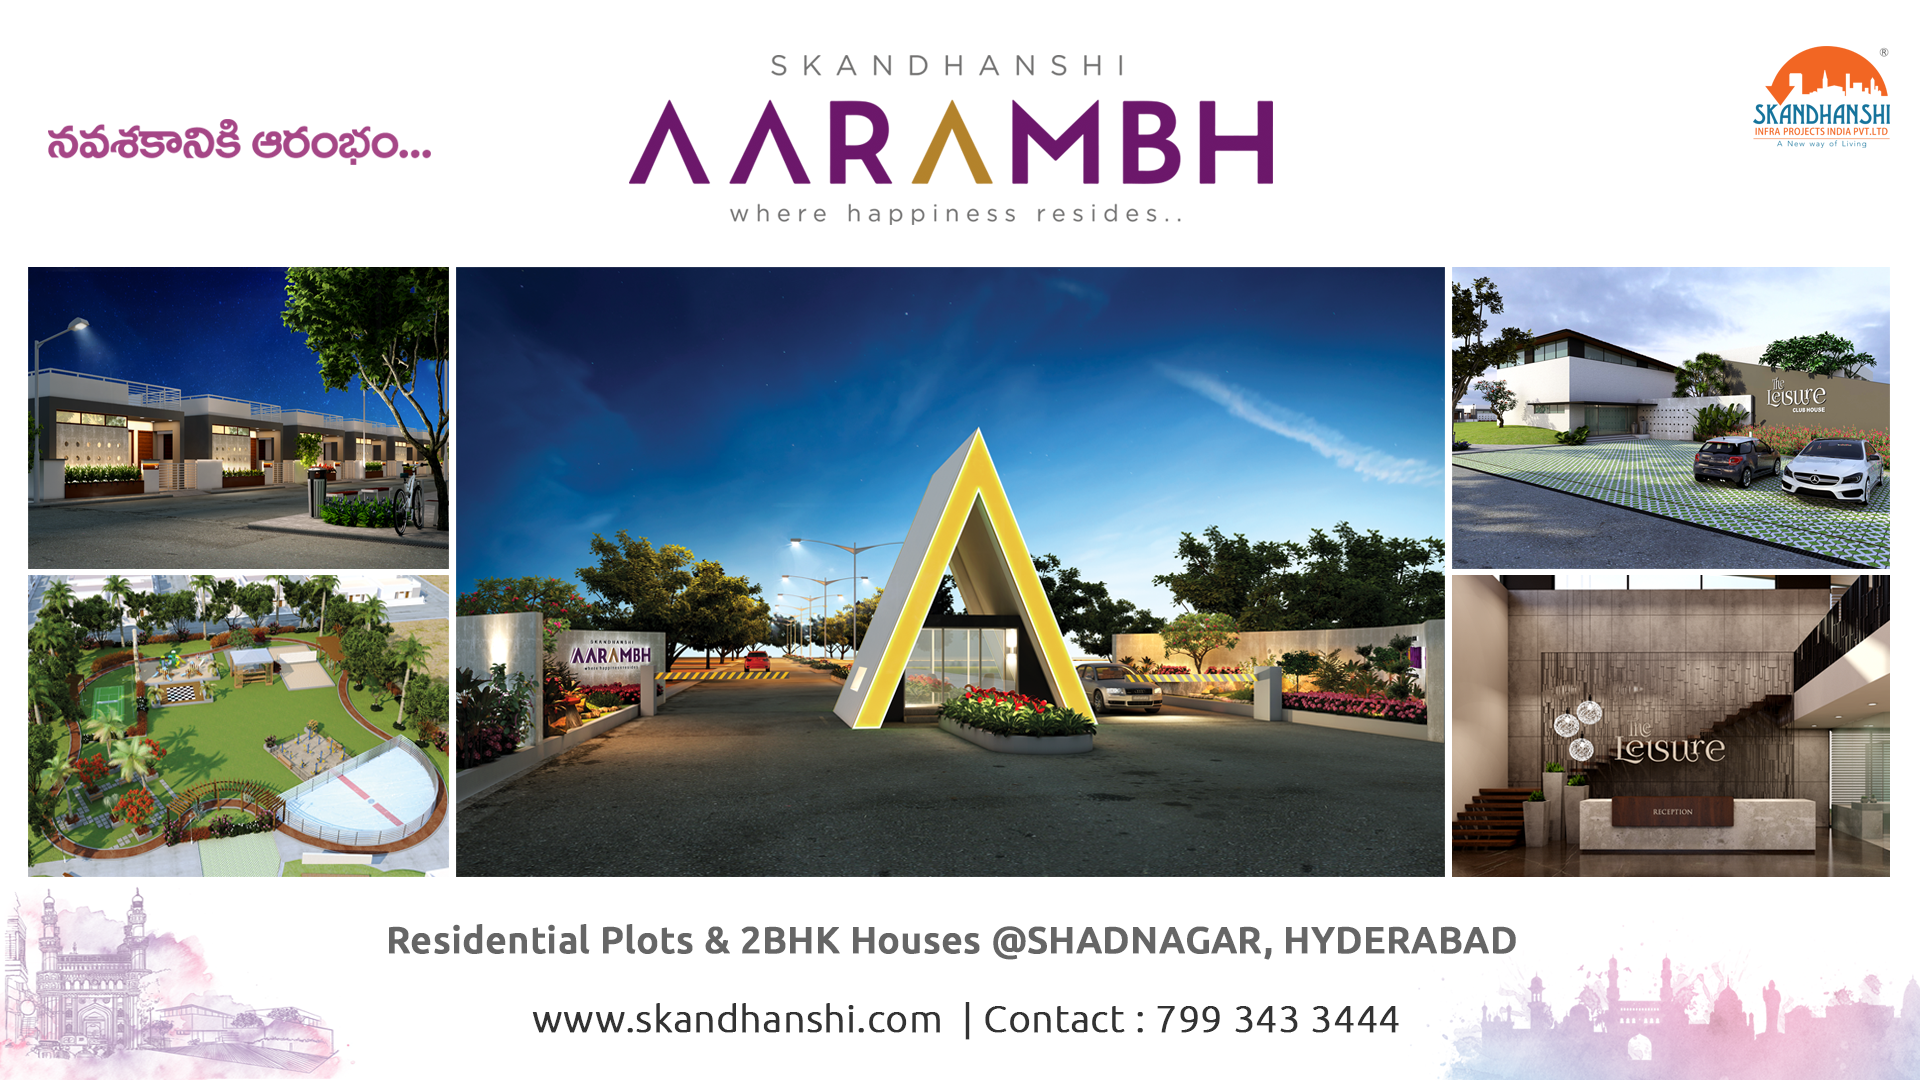 Skandhanshi Presents Aarambh Residential Plots 2 Bhk Houses Shadnagar Hyderabad To Know More Or Book Your S Kids Play Area Bungalow Interiors Site Visit